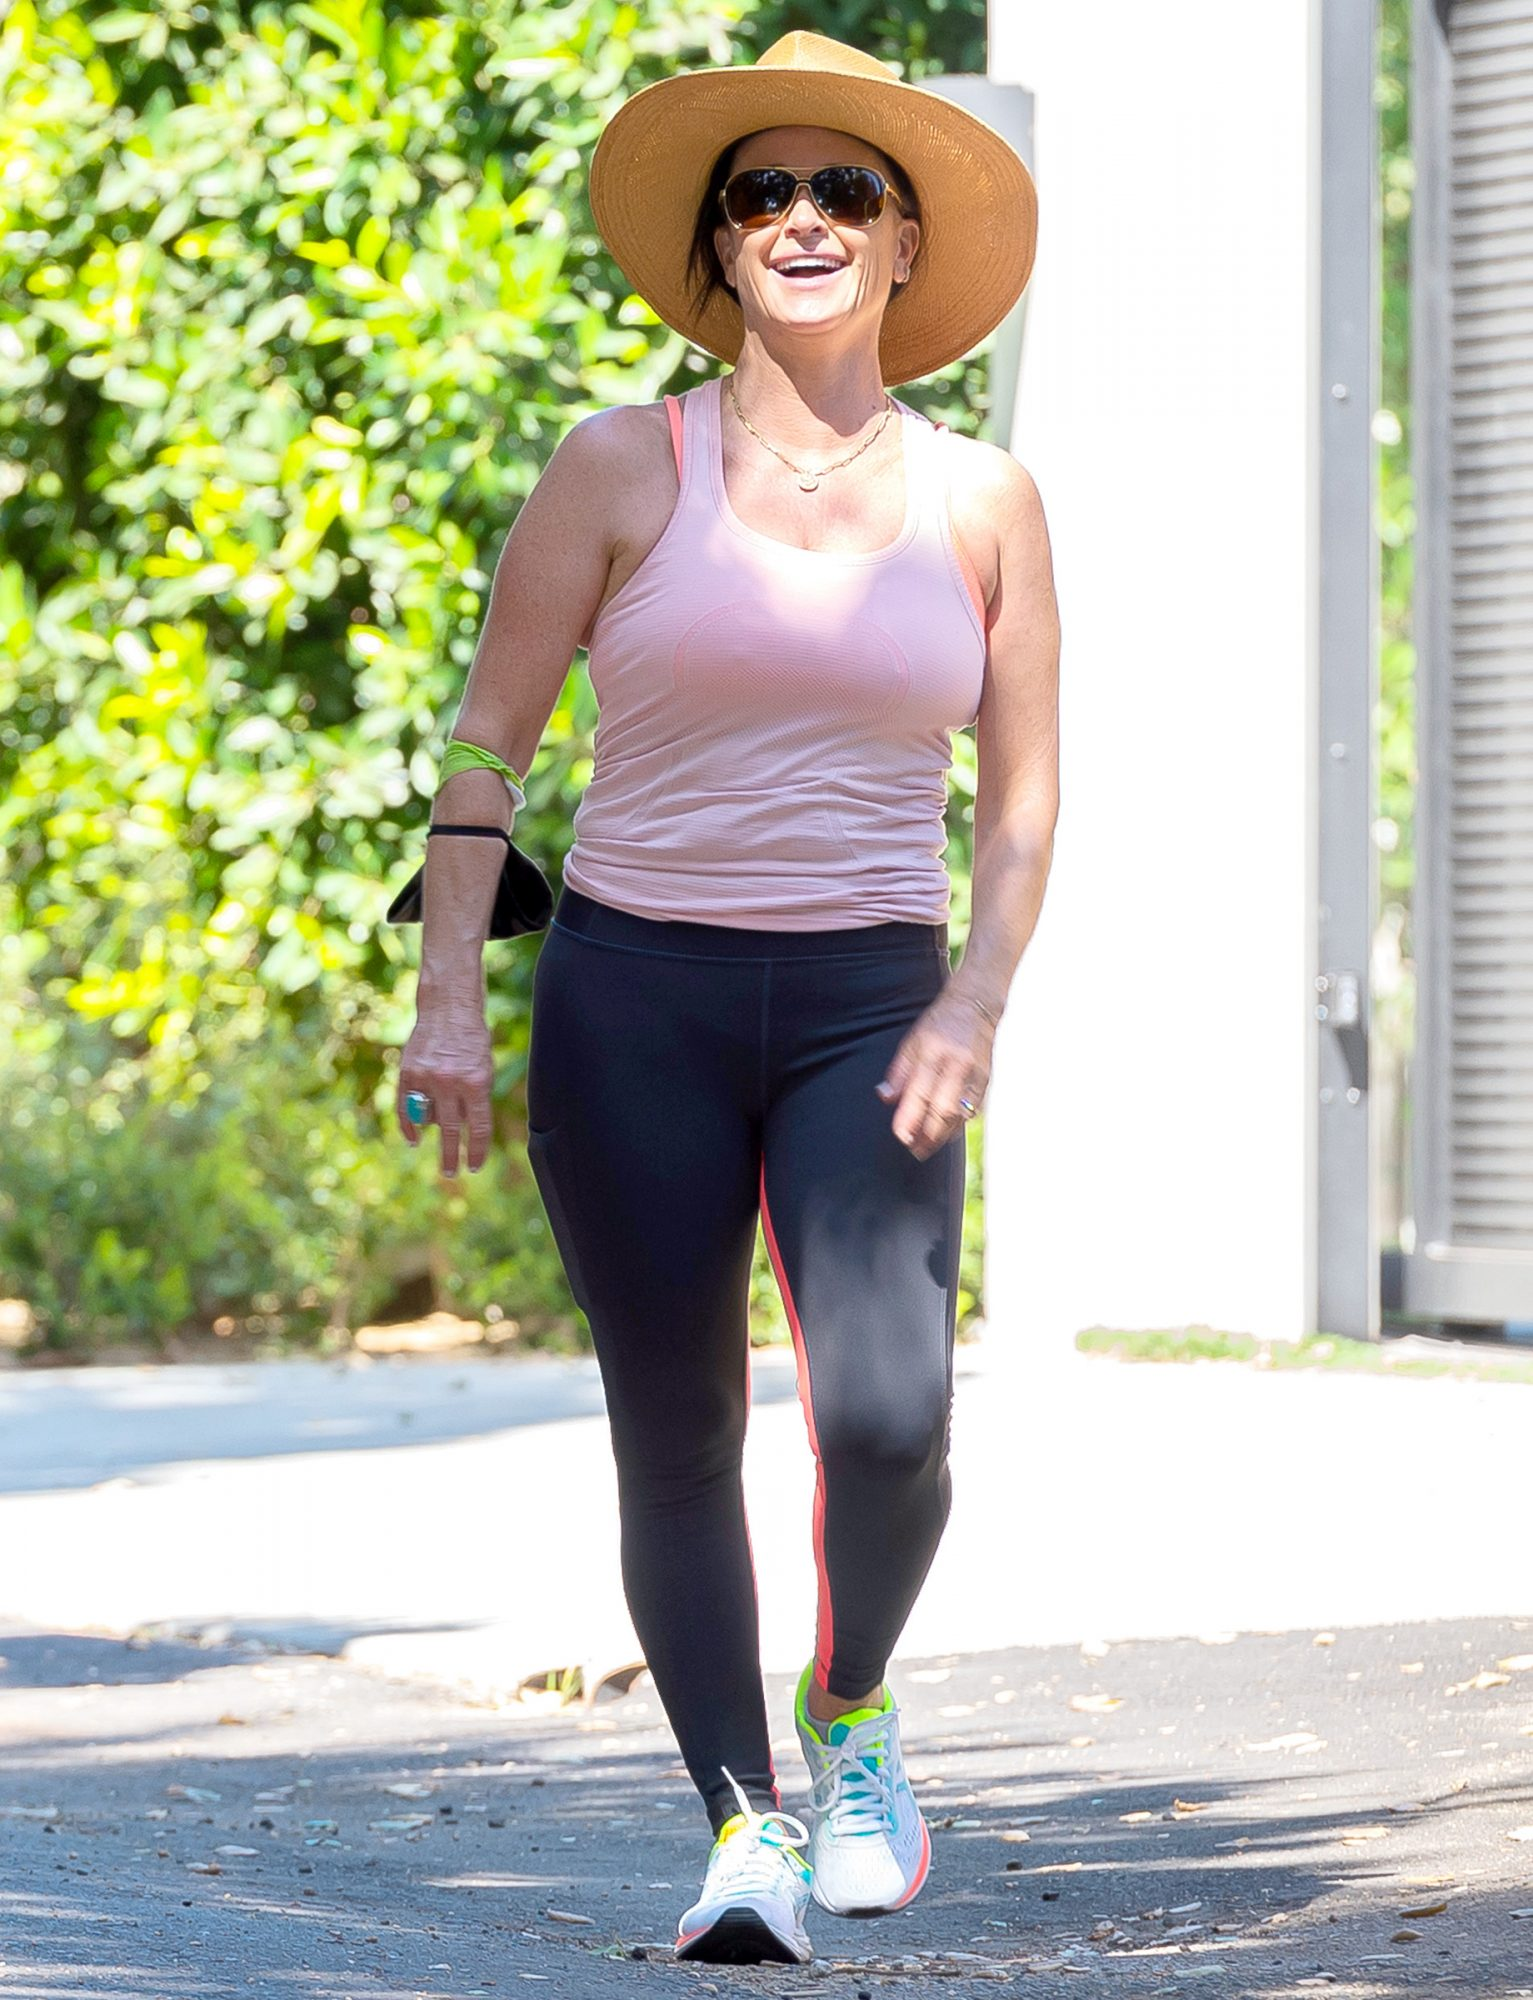 Kyle Richards is Pictured Taking a Walk Around Her Neighborhood n Los Angeles.